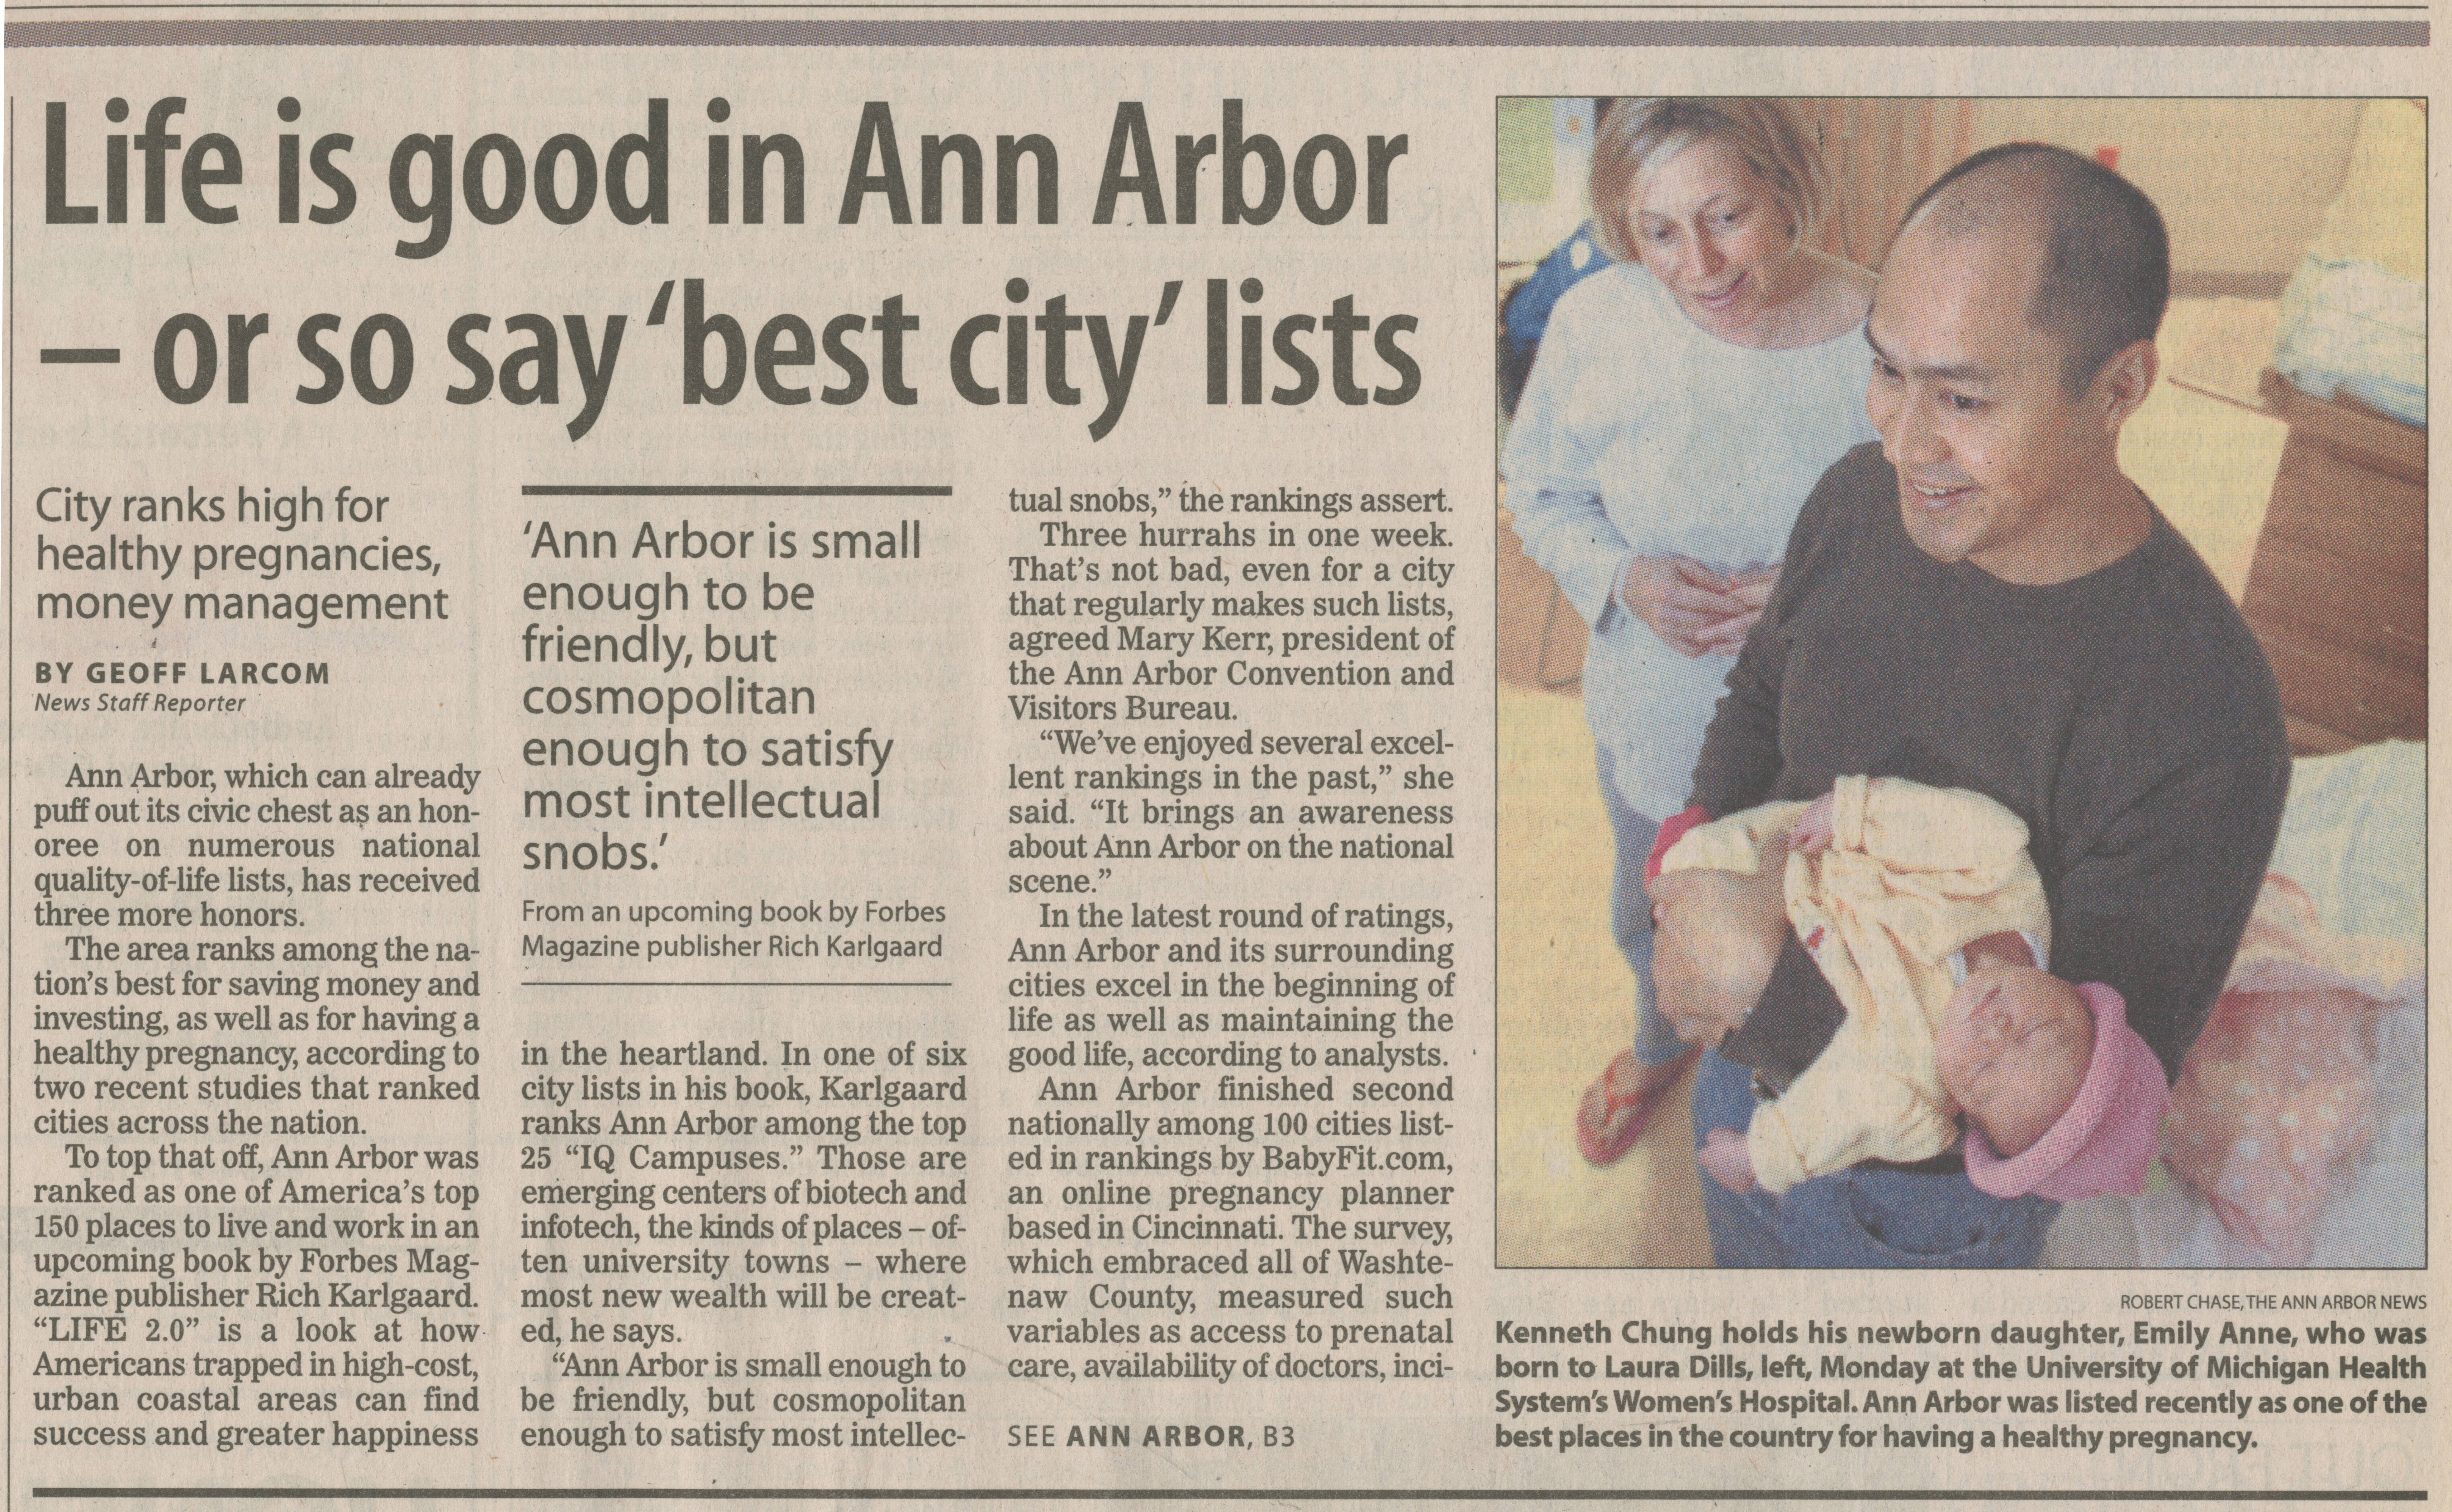 Life is good in Ann Arbor - or so say 'best city' lists image